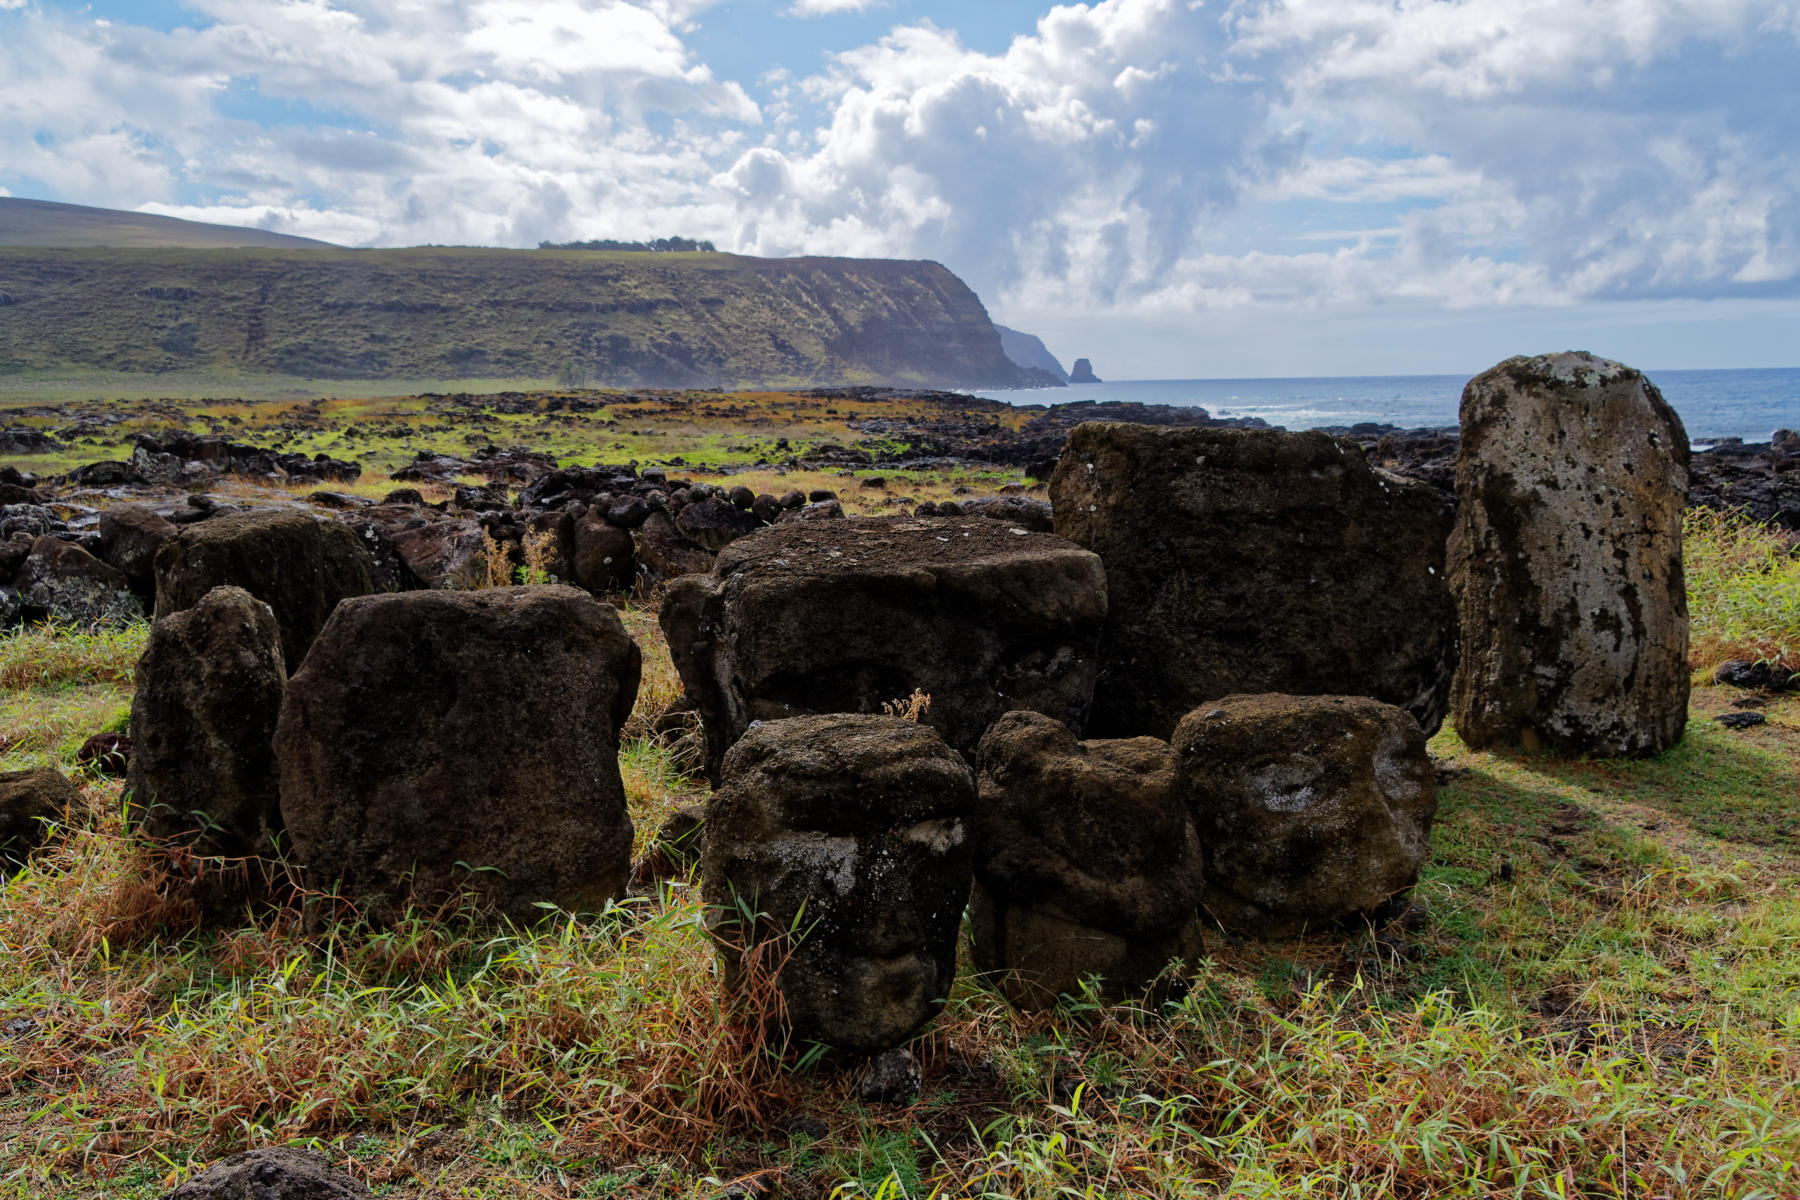 Discarded and replace heads at Ahu Tongariki